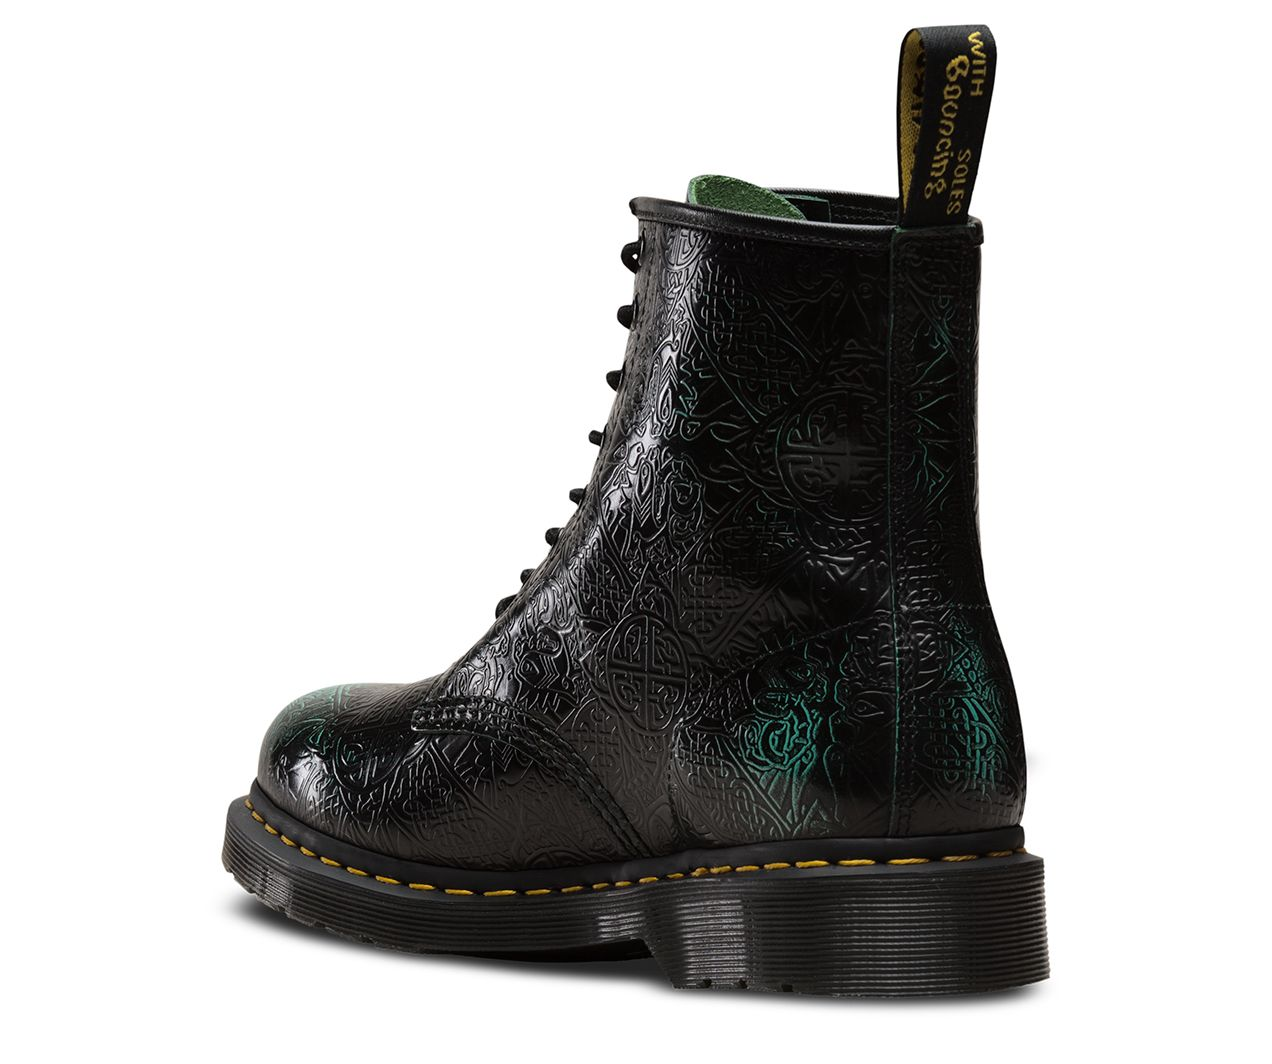 a920ba14a78 1460 St. Patrick's Day | 1460 (8 Eye Boots) | The Official US Dr Martens  Store